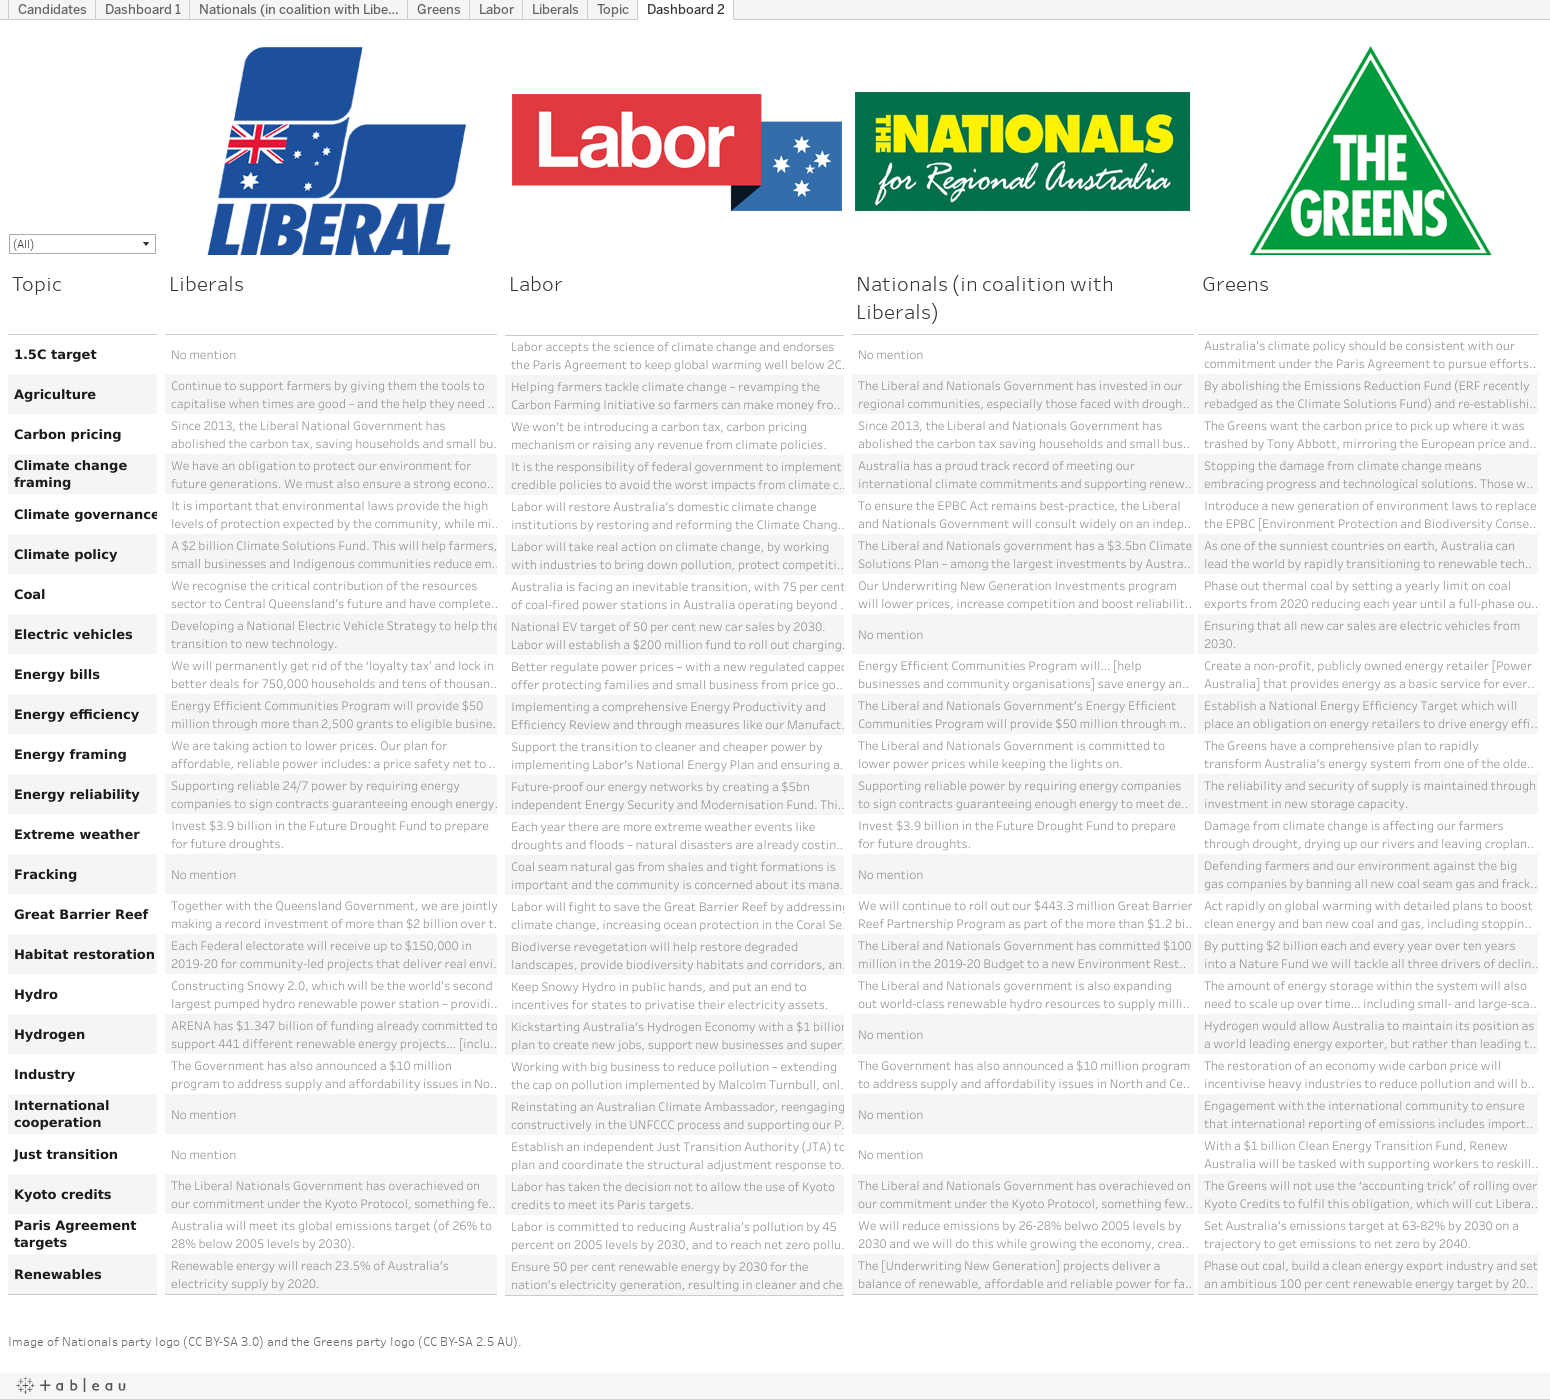 Australian election 2019: What the manifestos say on energy and